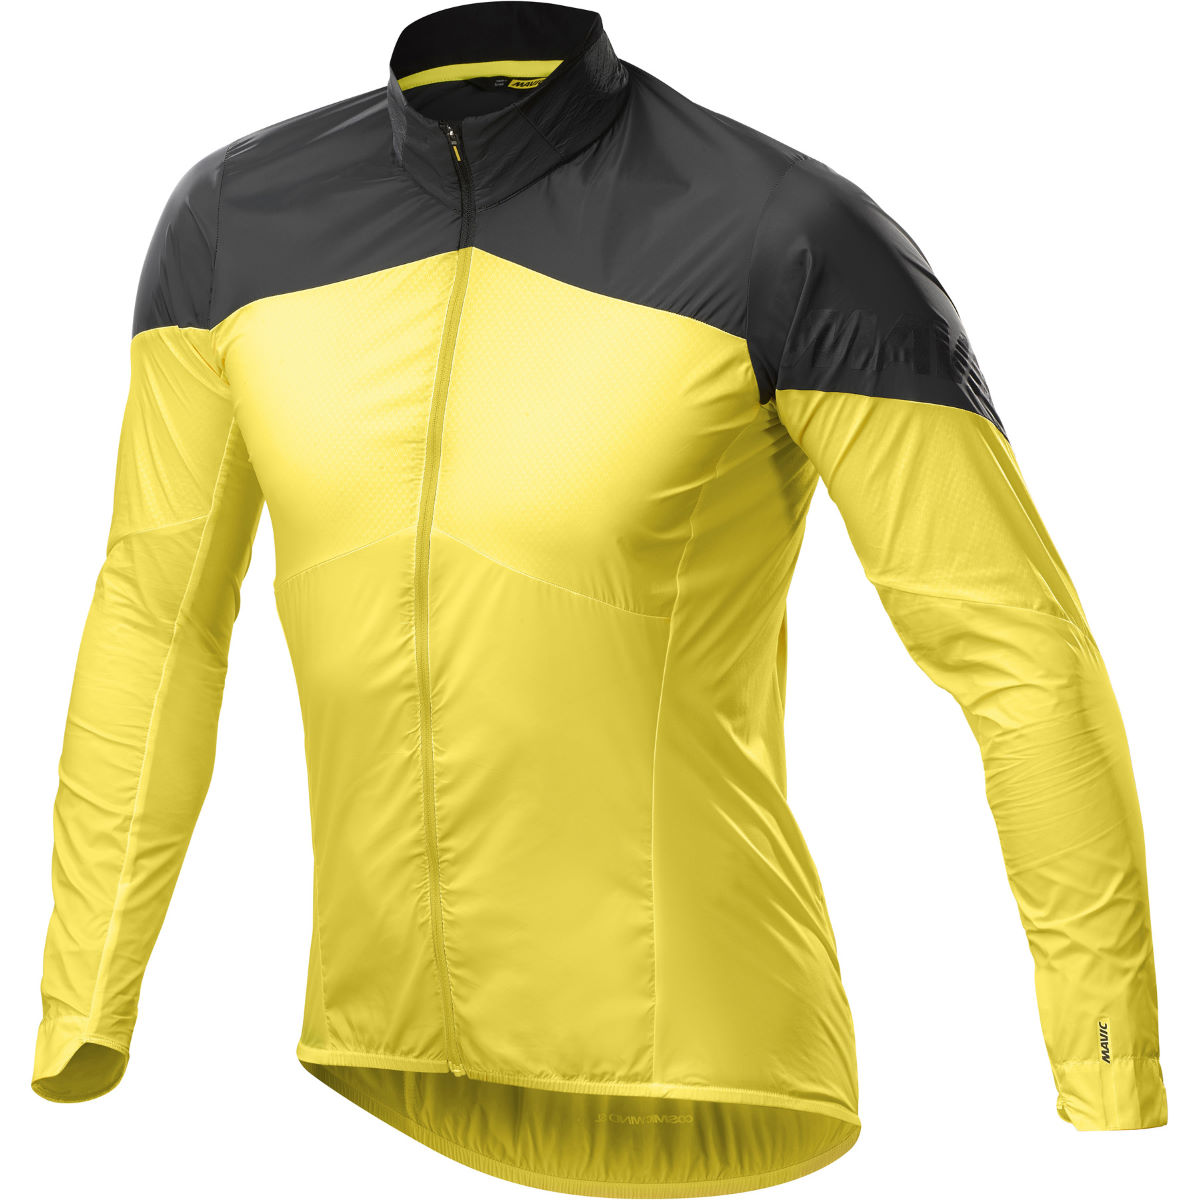 Veste Mavic Cosmic Wind SL - L Yellow Mavic/Black Vestes